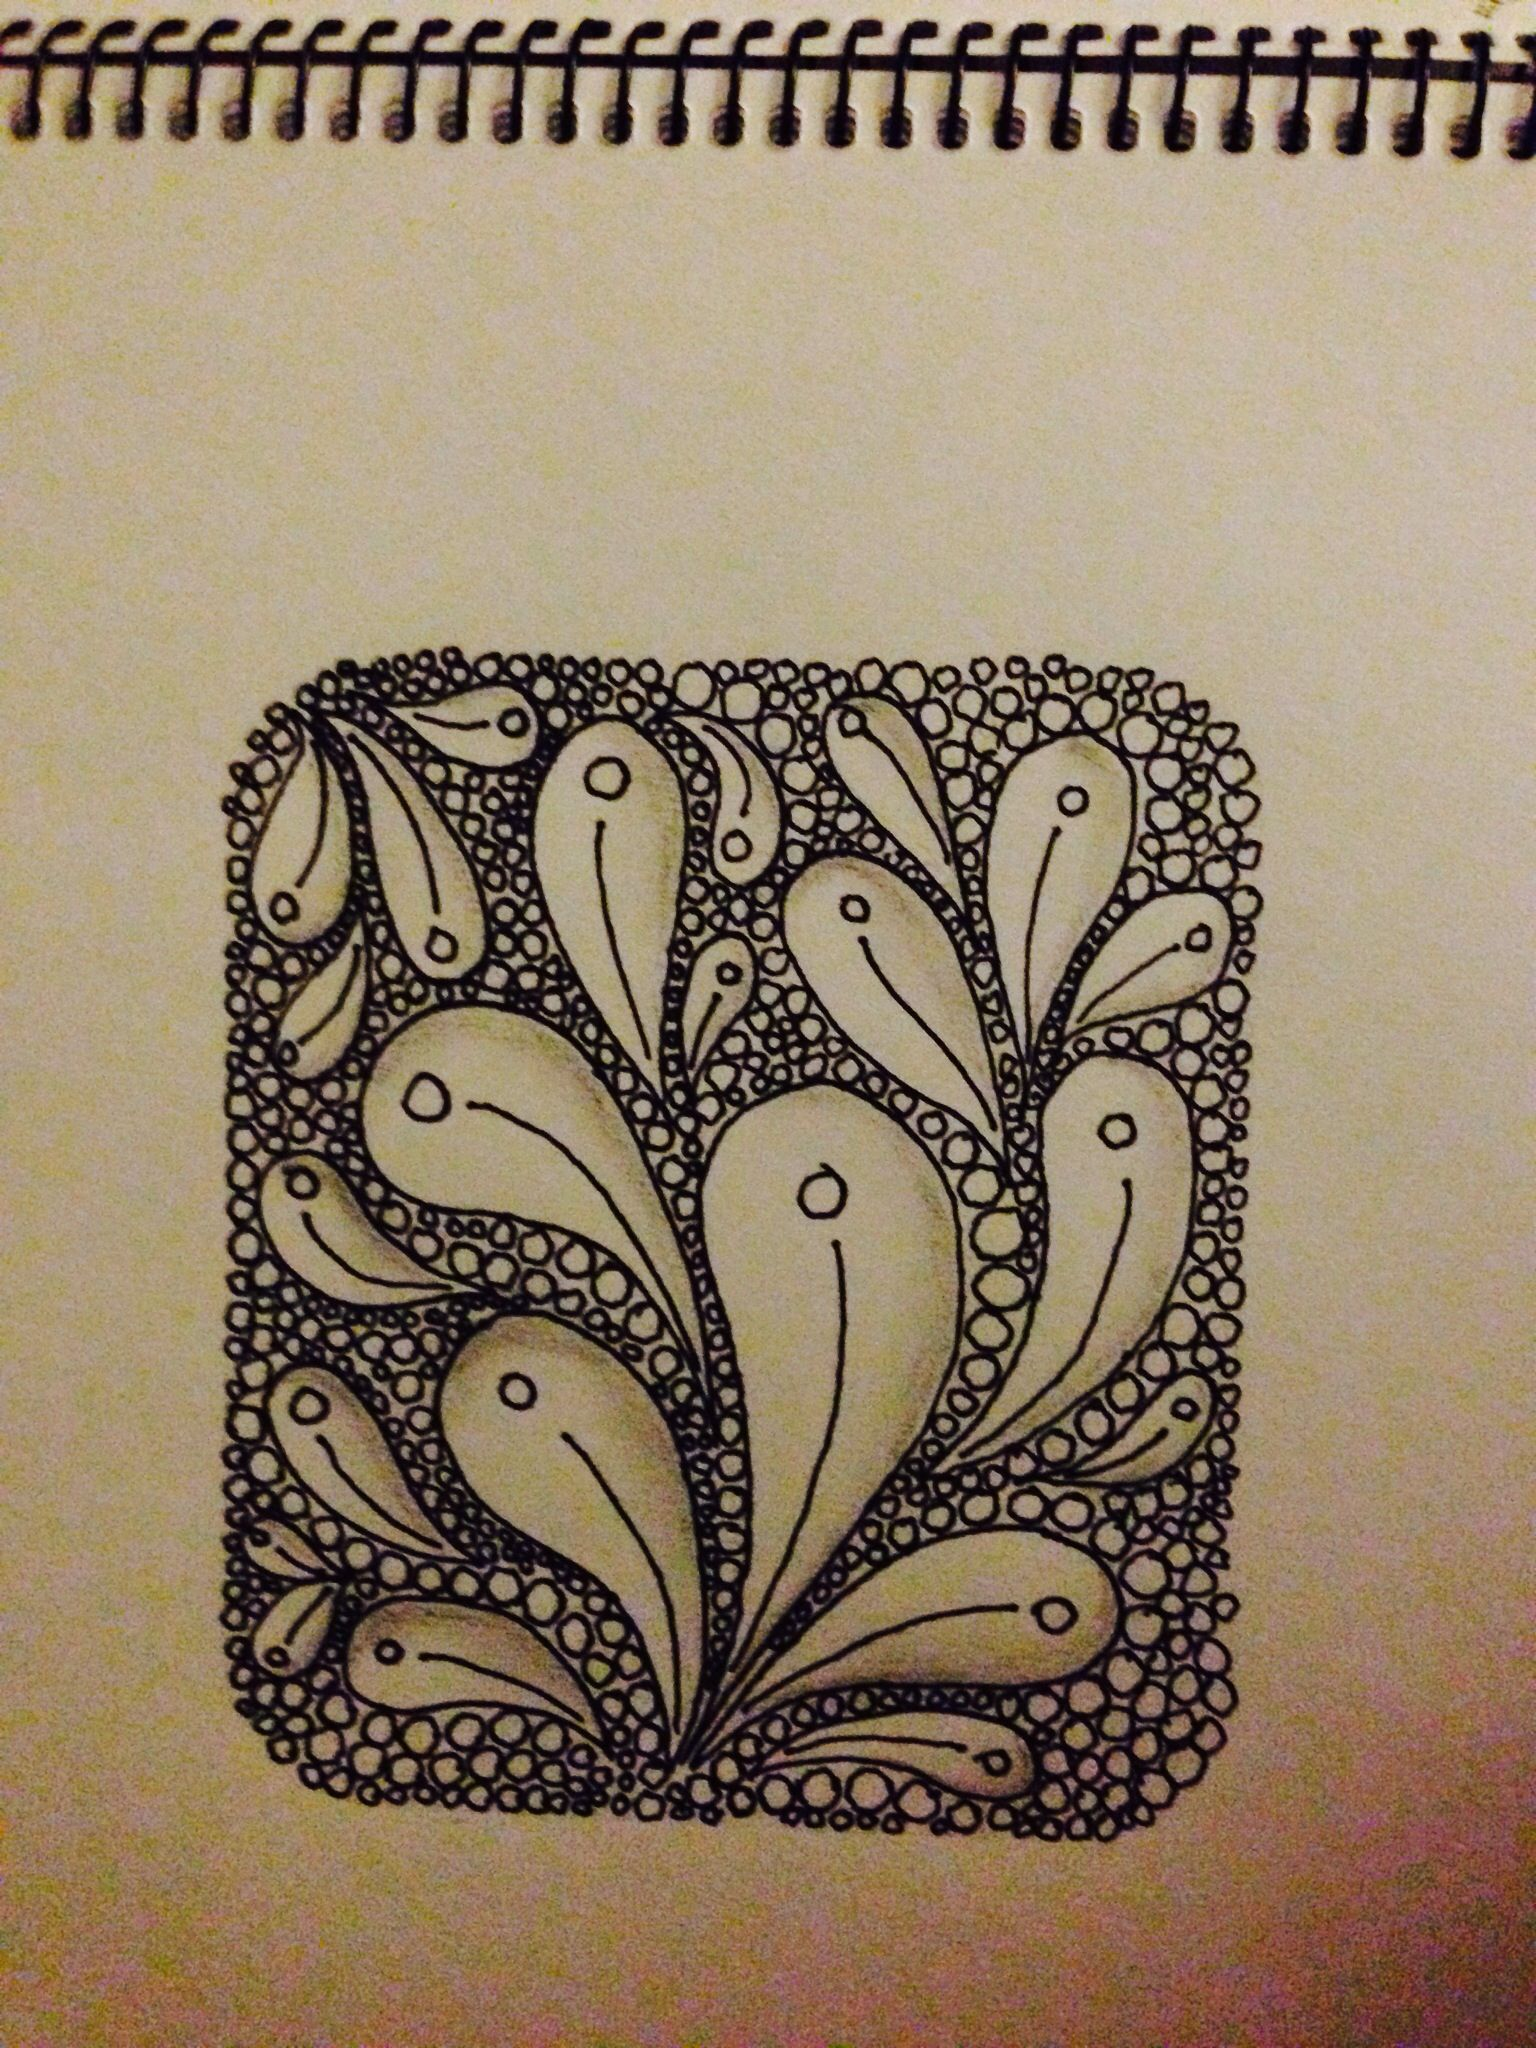 My first attempts at zentangle